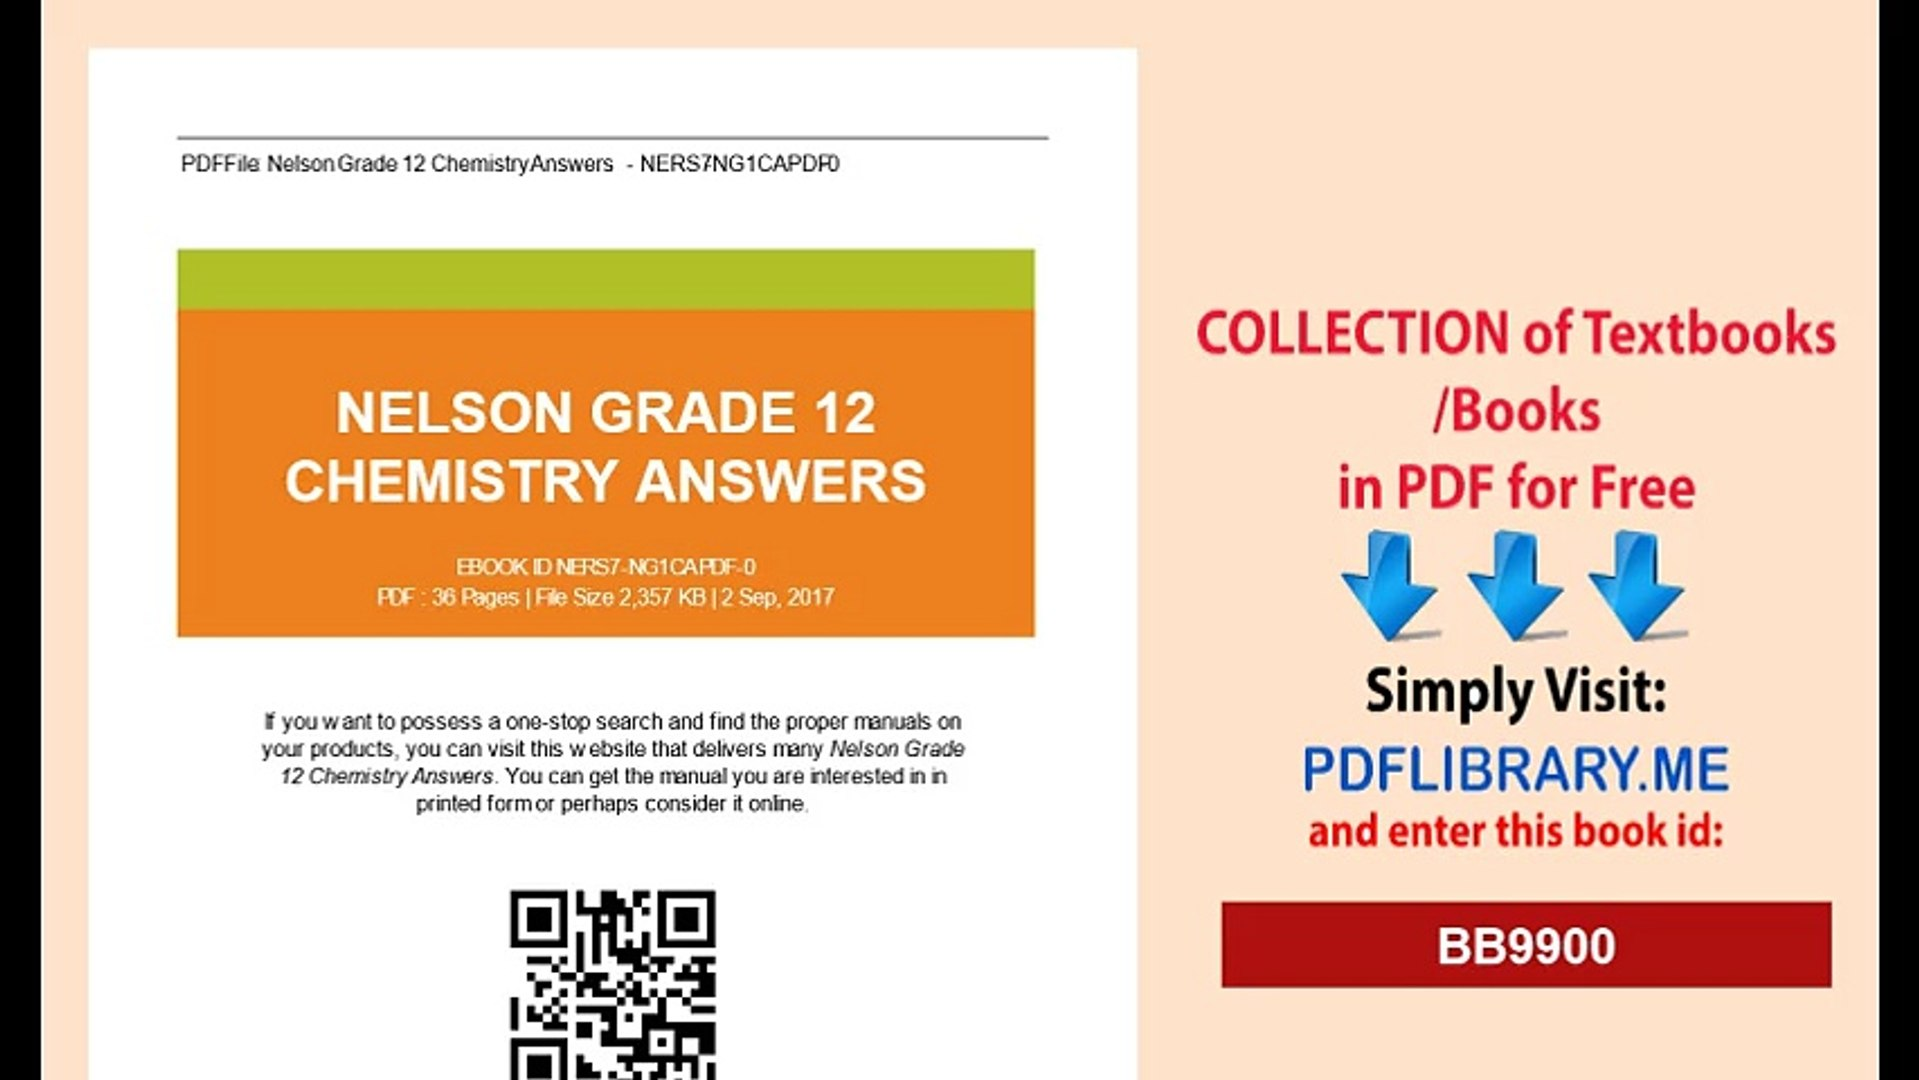 Nelson Grade 12 Chemistry Answers